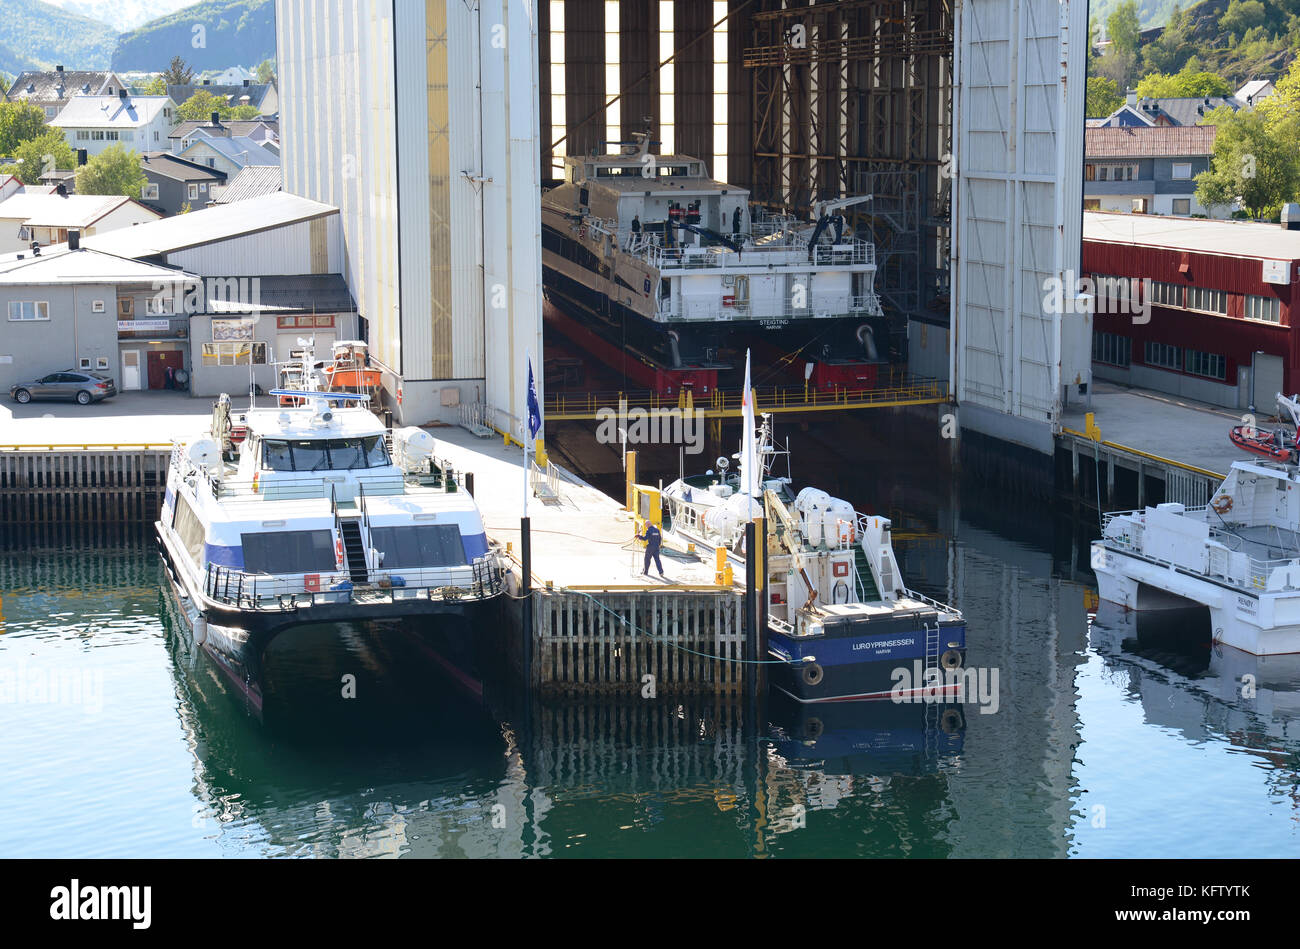 A dry dock in the village of Svolvaer Lofoten Norway. - Stock Image